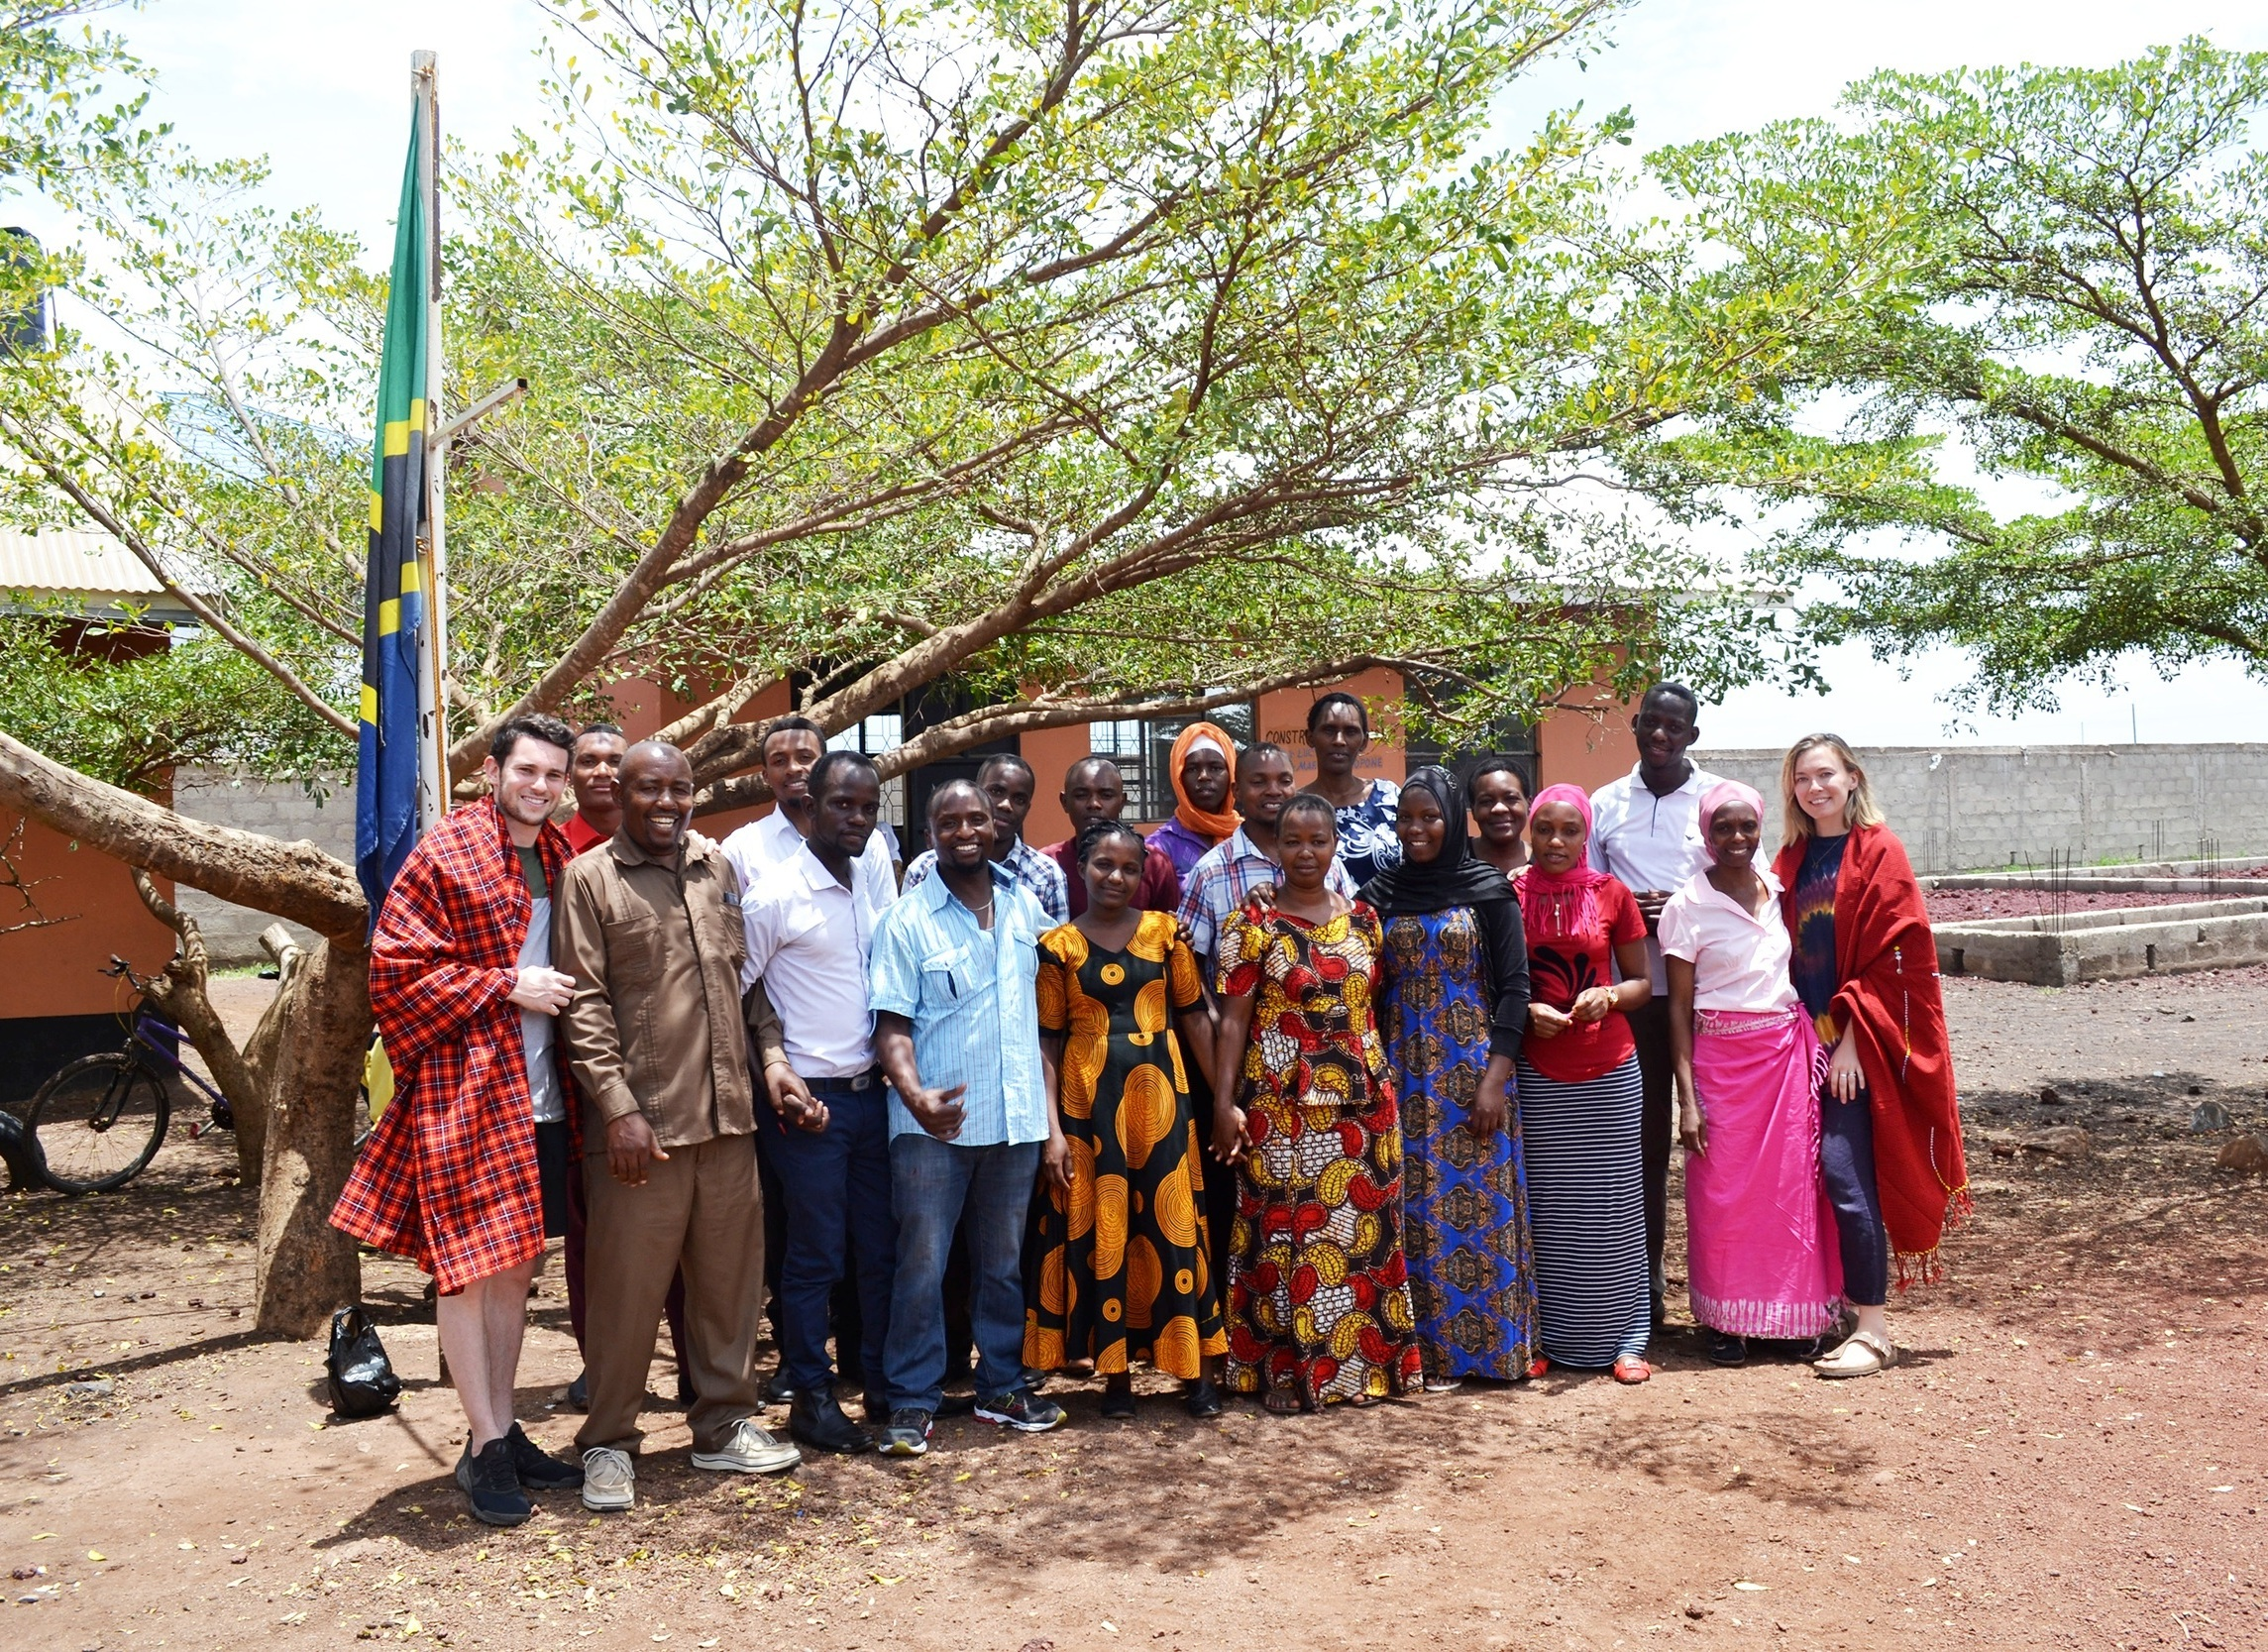 Our Team - We are made up of dedicated Tanzanian partners, Trustees, volunteers that are dedicated to helping children in Tanzania. We are completely volunteer led. However, from 2019, we are looking to hire our first members of staff to help us scale our work and support more children in rural Tanzania.